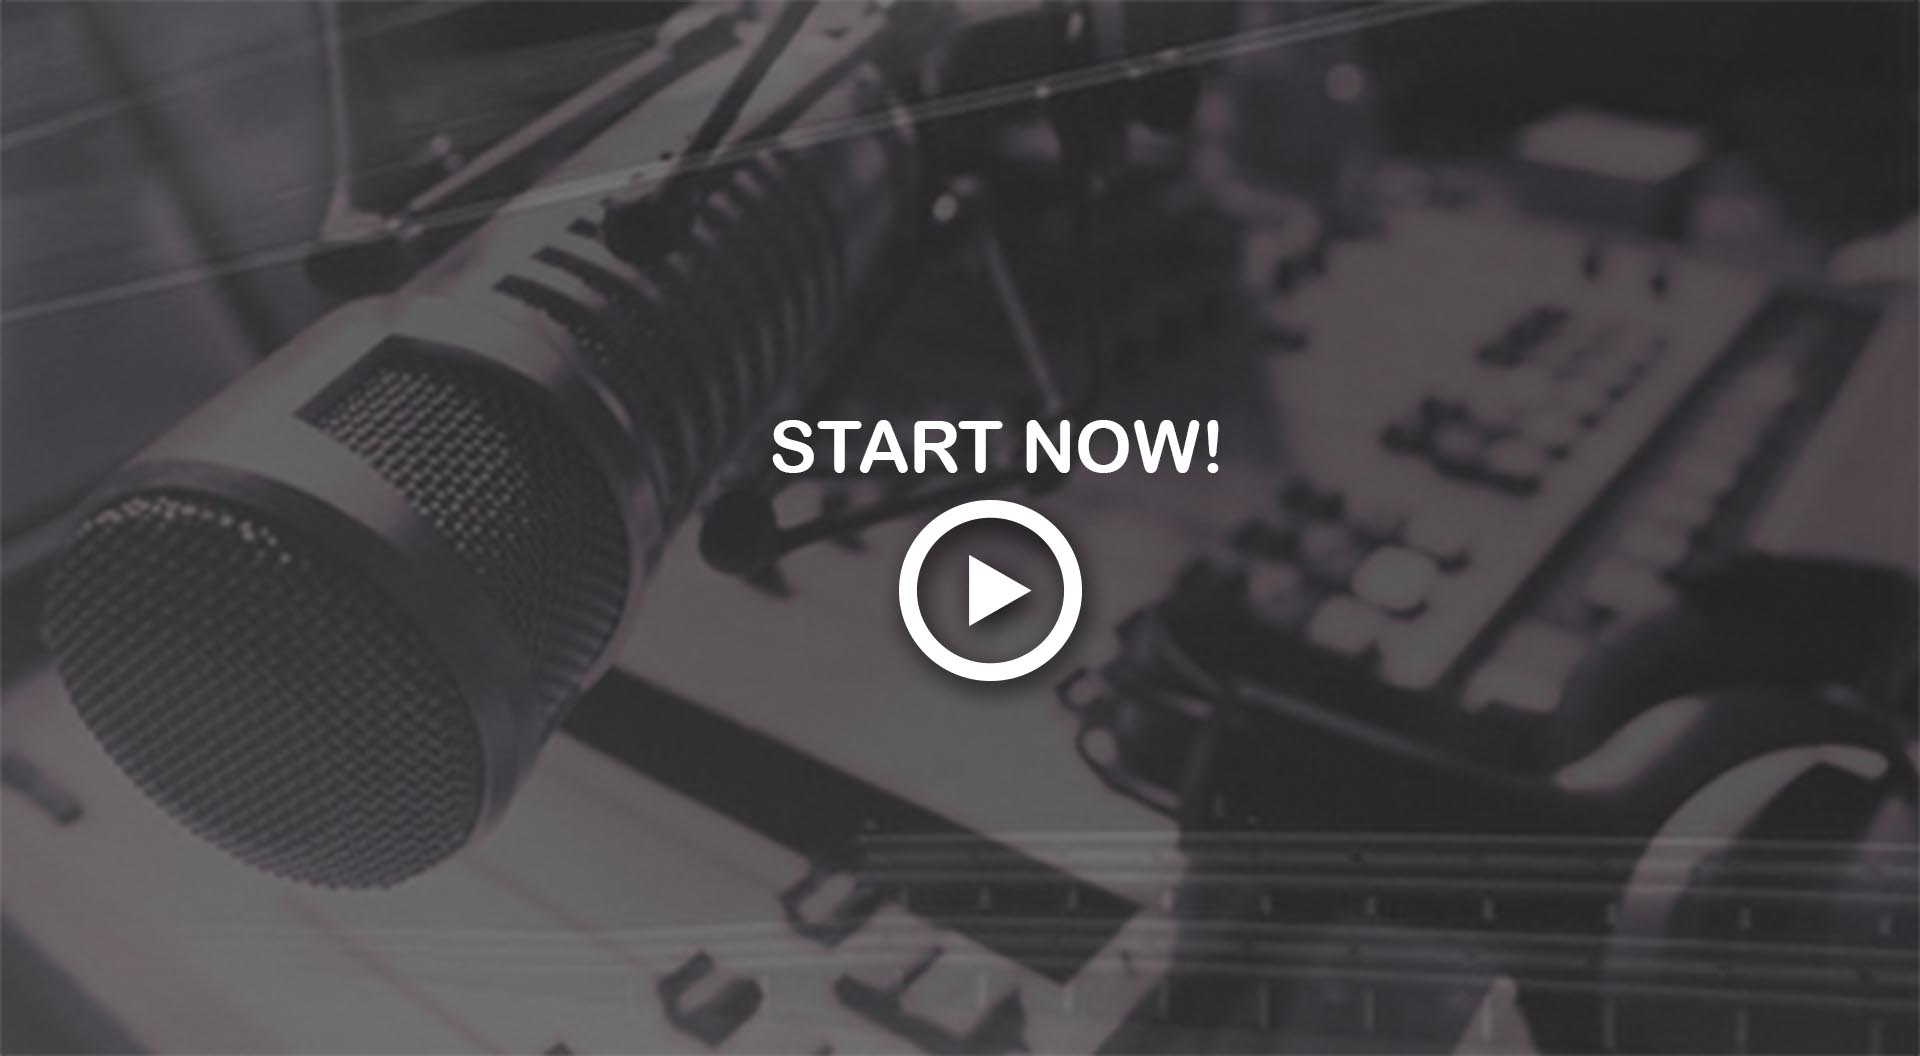 CREATE YOUR WEB RADIO - SHOUTCAST ICECAST